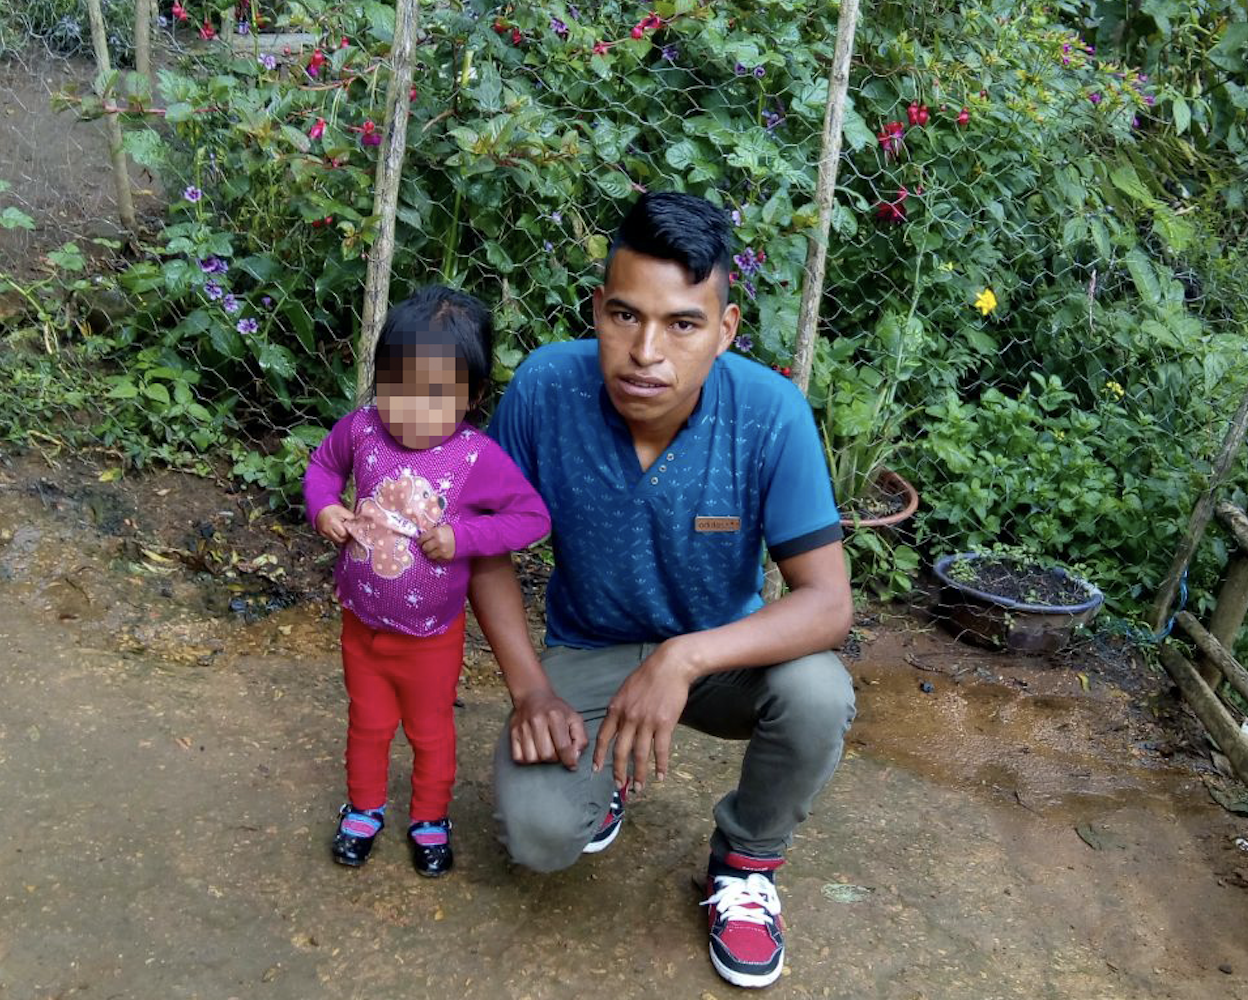 Mario Perez-Domingo and his daughter in Huehuetenango, Guatemala.